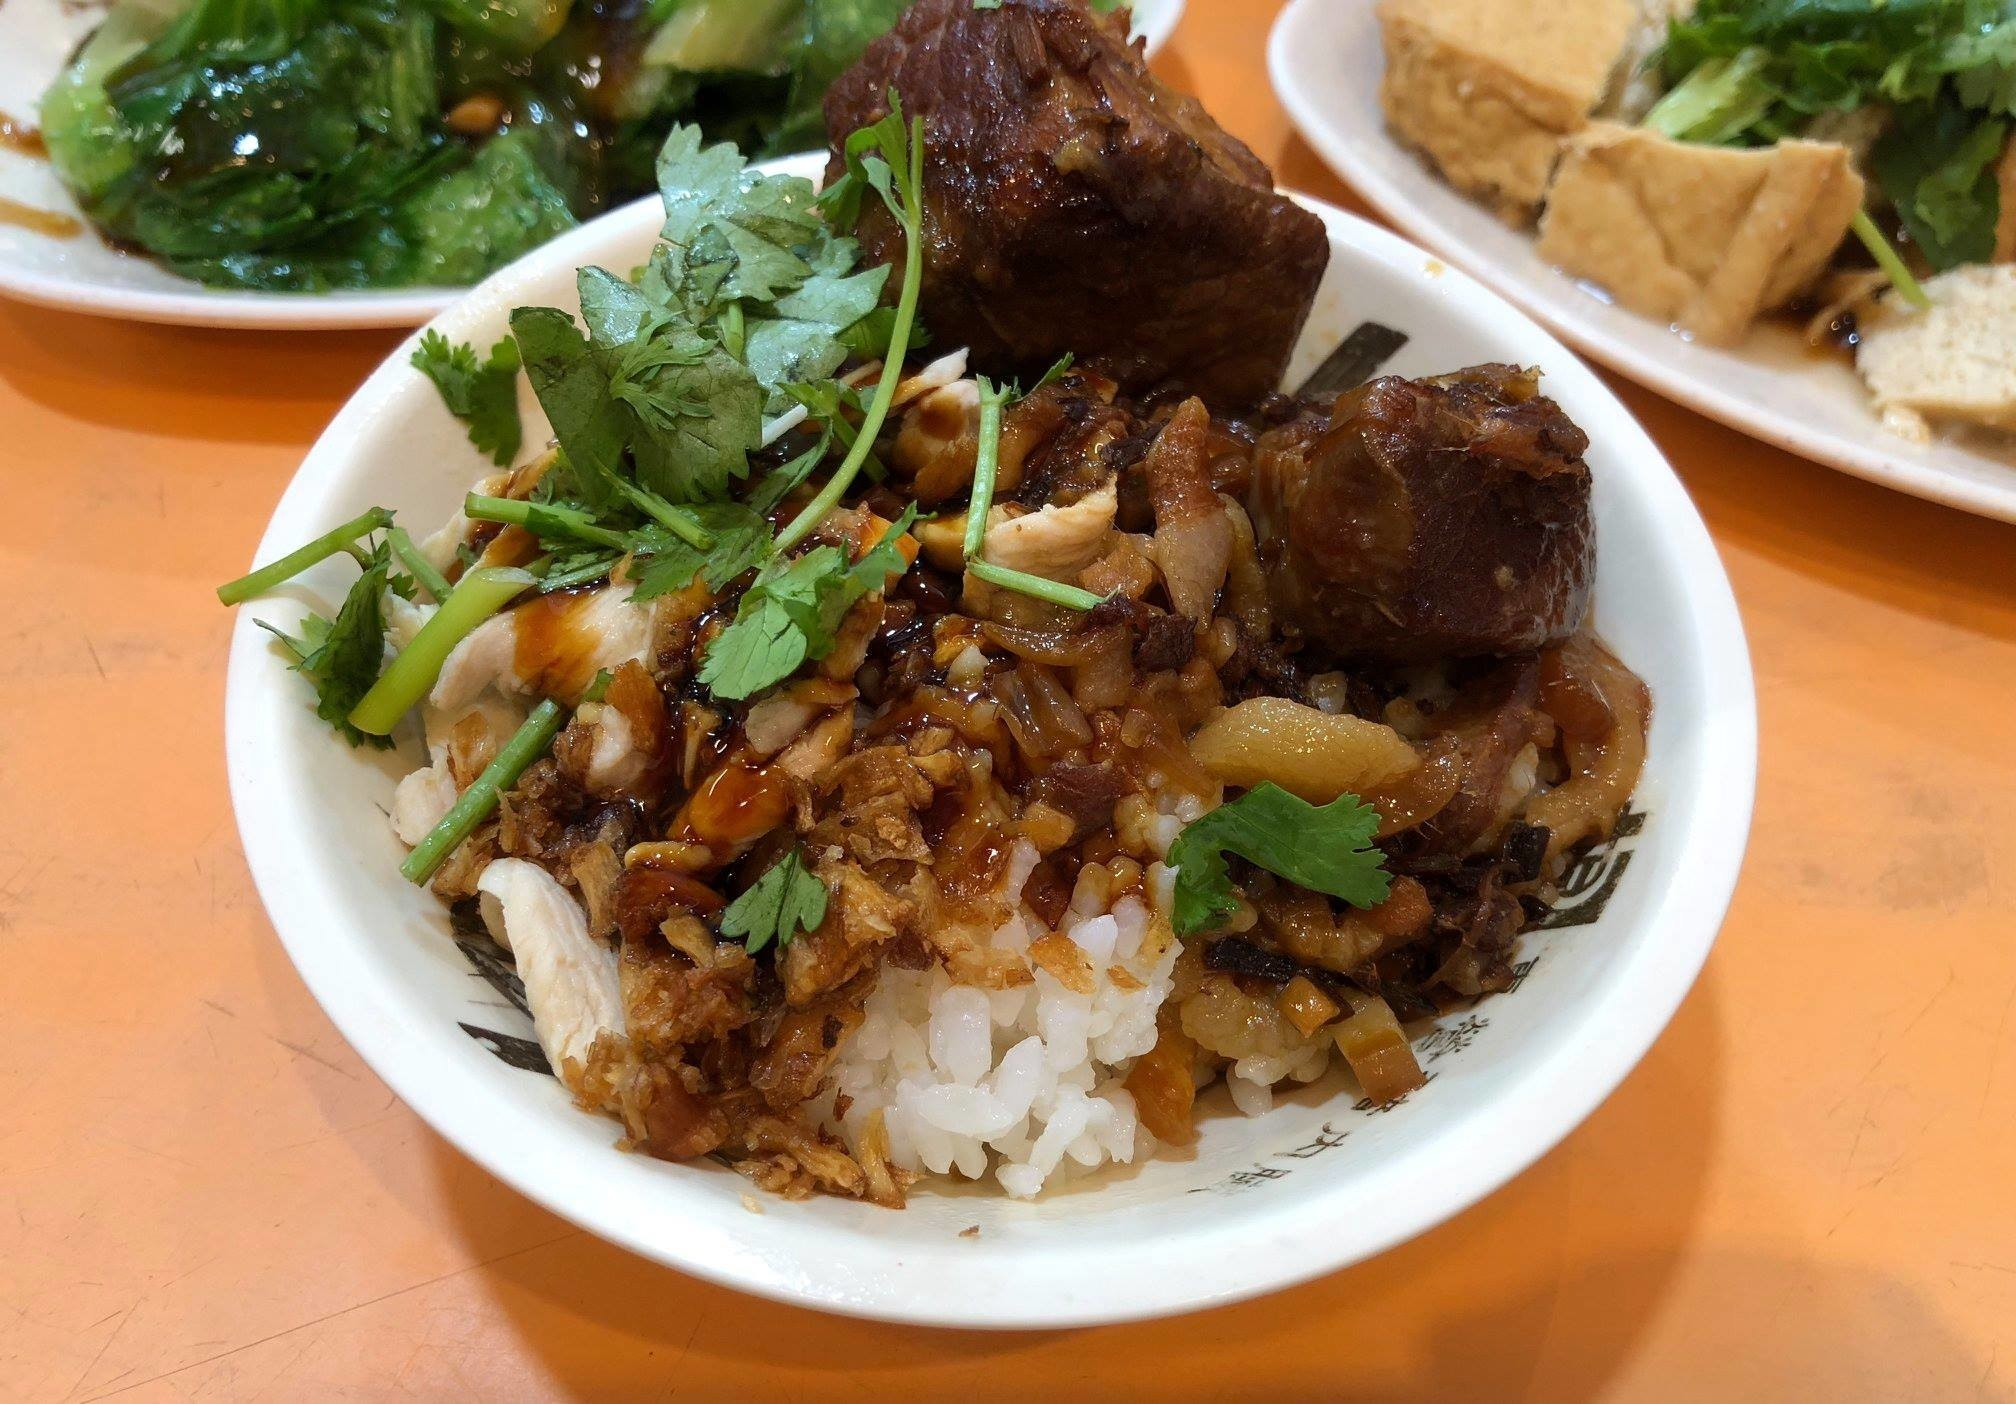 Thai cuisine, American Chinese cuisine, Chinese cuisine, Plate lunch, Cuisine of the United States, Cooked rice, Recipe, Curry, Meal, Food, steamed rice, dish, food, cuisine, steamed rice, asian food, plate lunch, meal, american chinese cuisine, recipe, southeast asian food